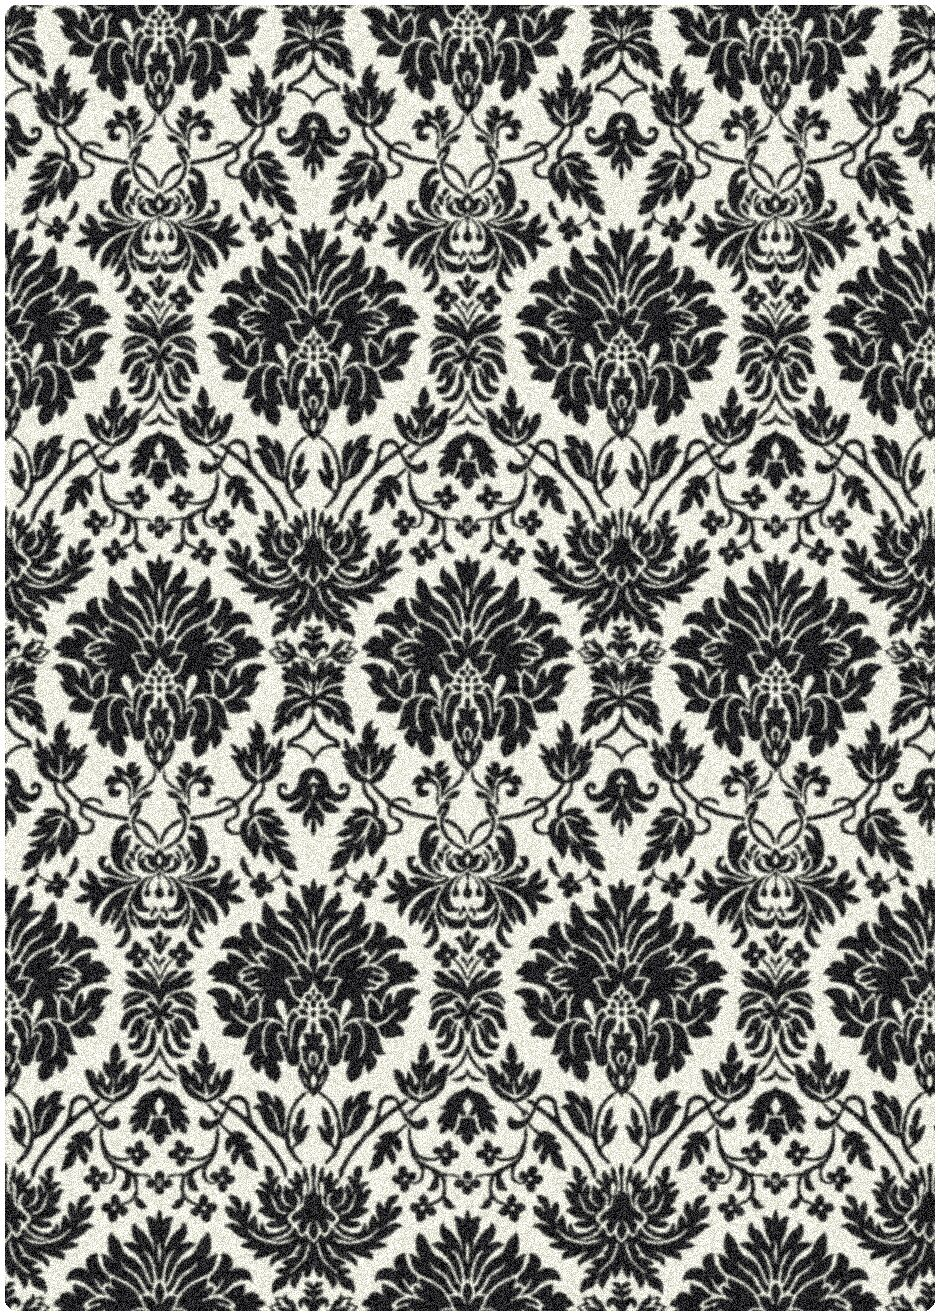 Manor Uptown Hand-Tufted Black/White Area Rug Rug Size: Rectangle 5'4